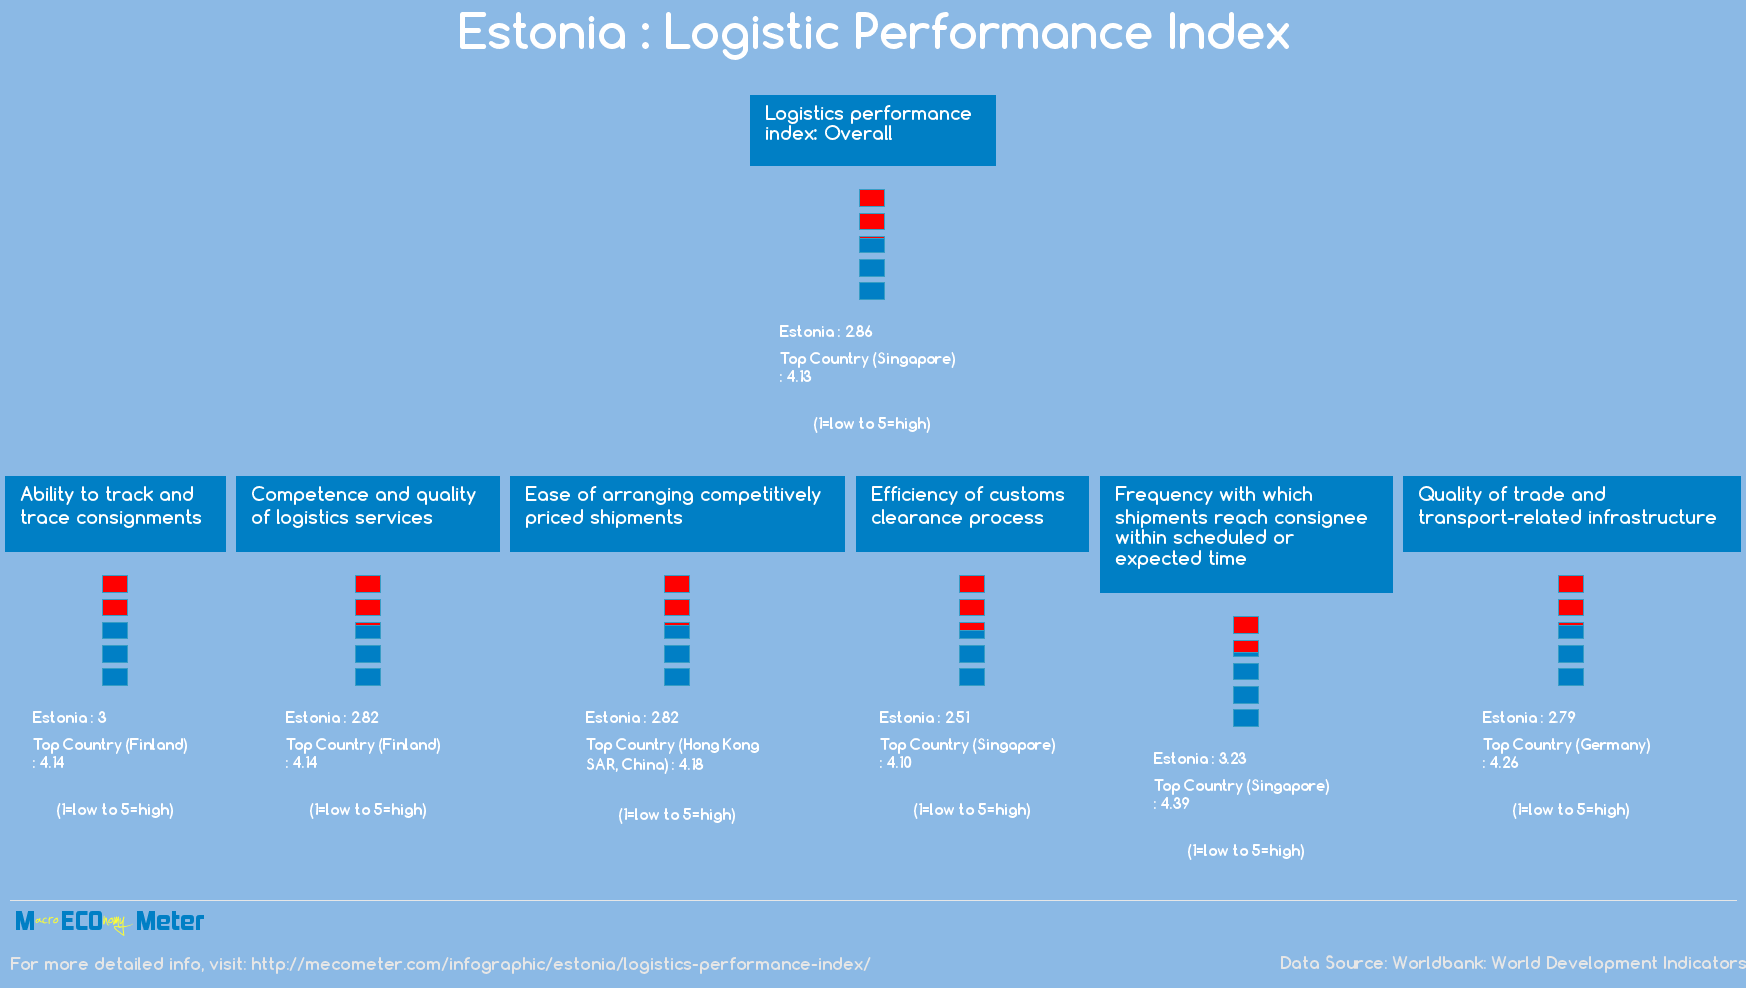 Estonia : Logistic Performance Index